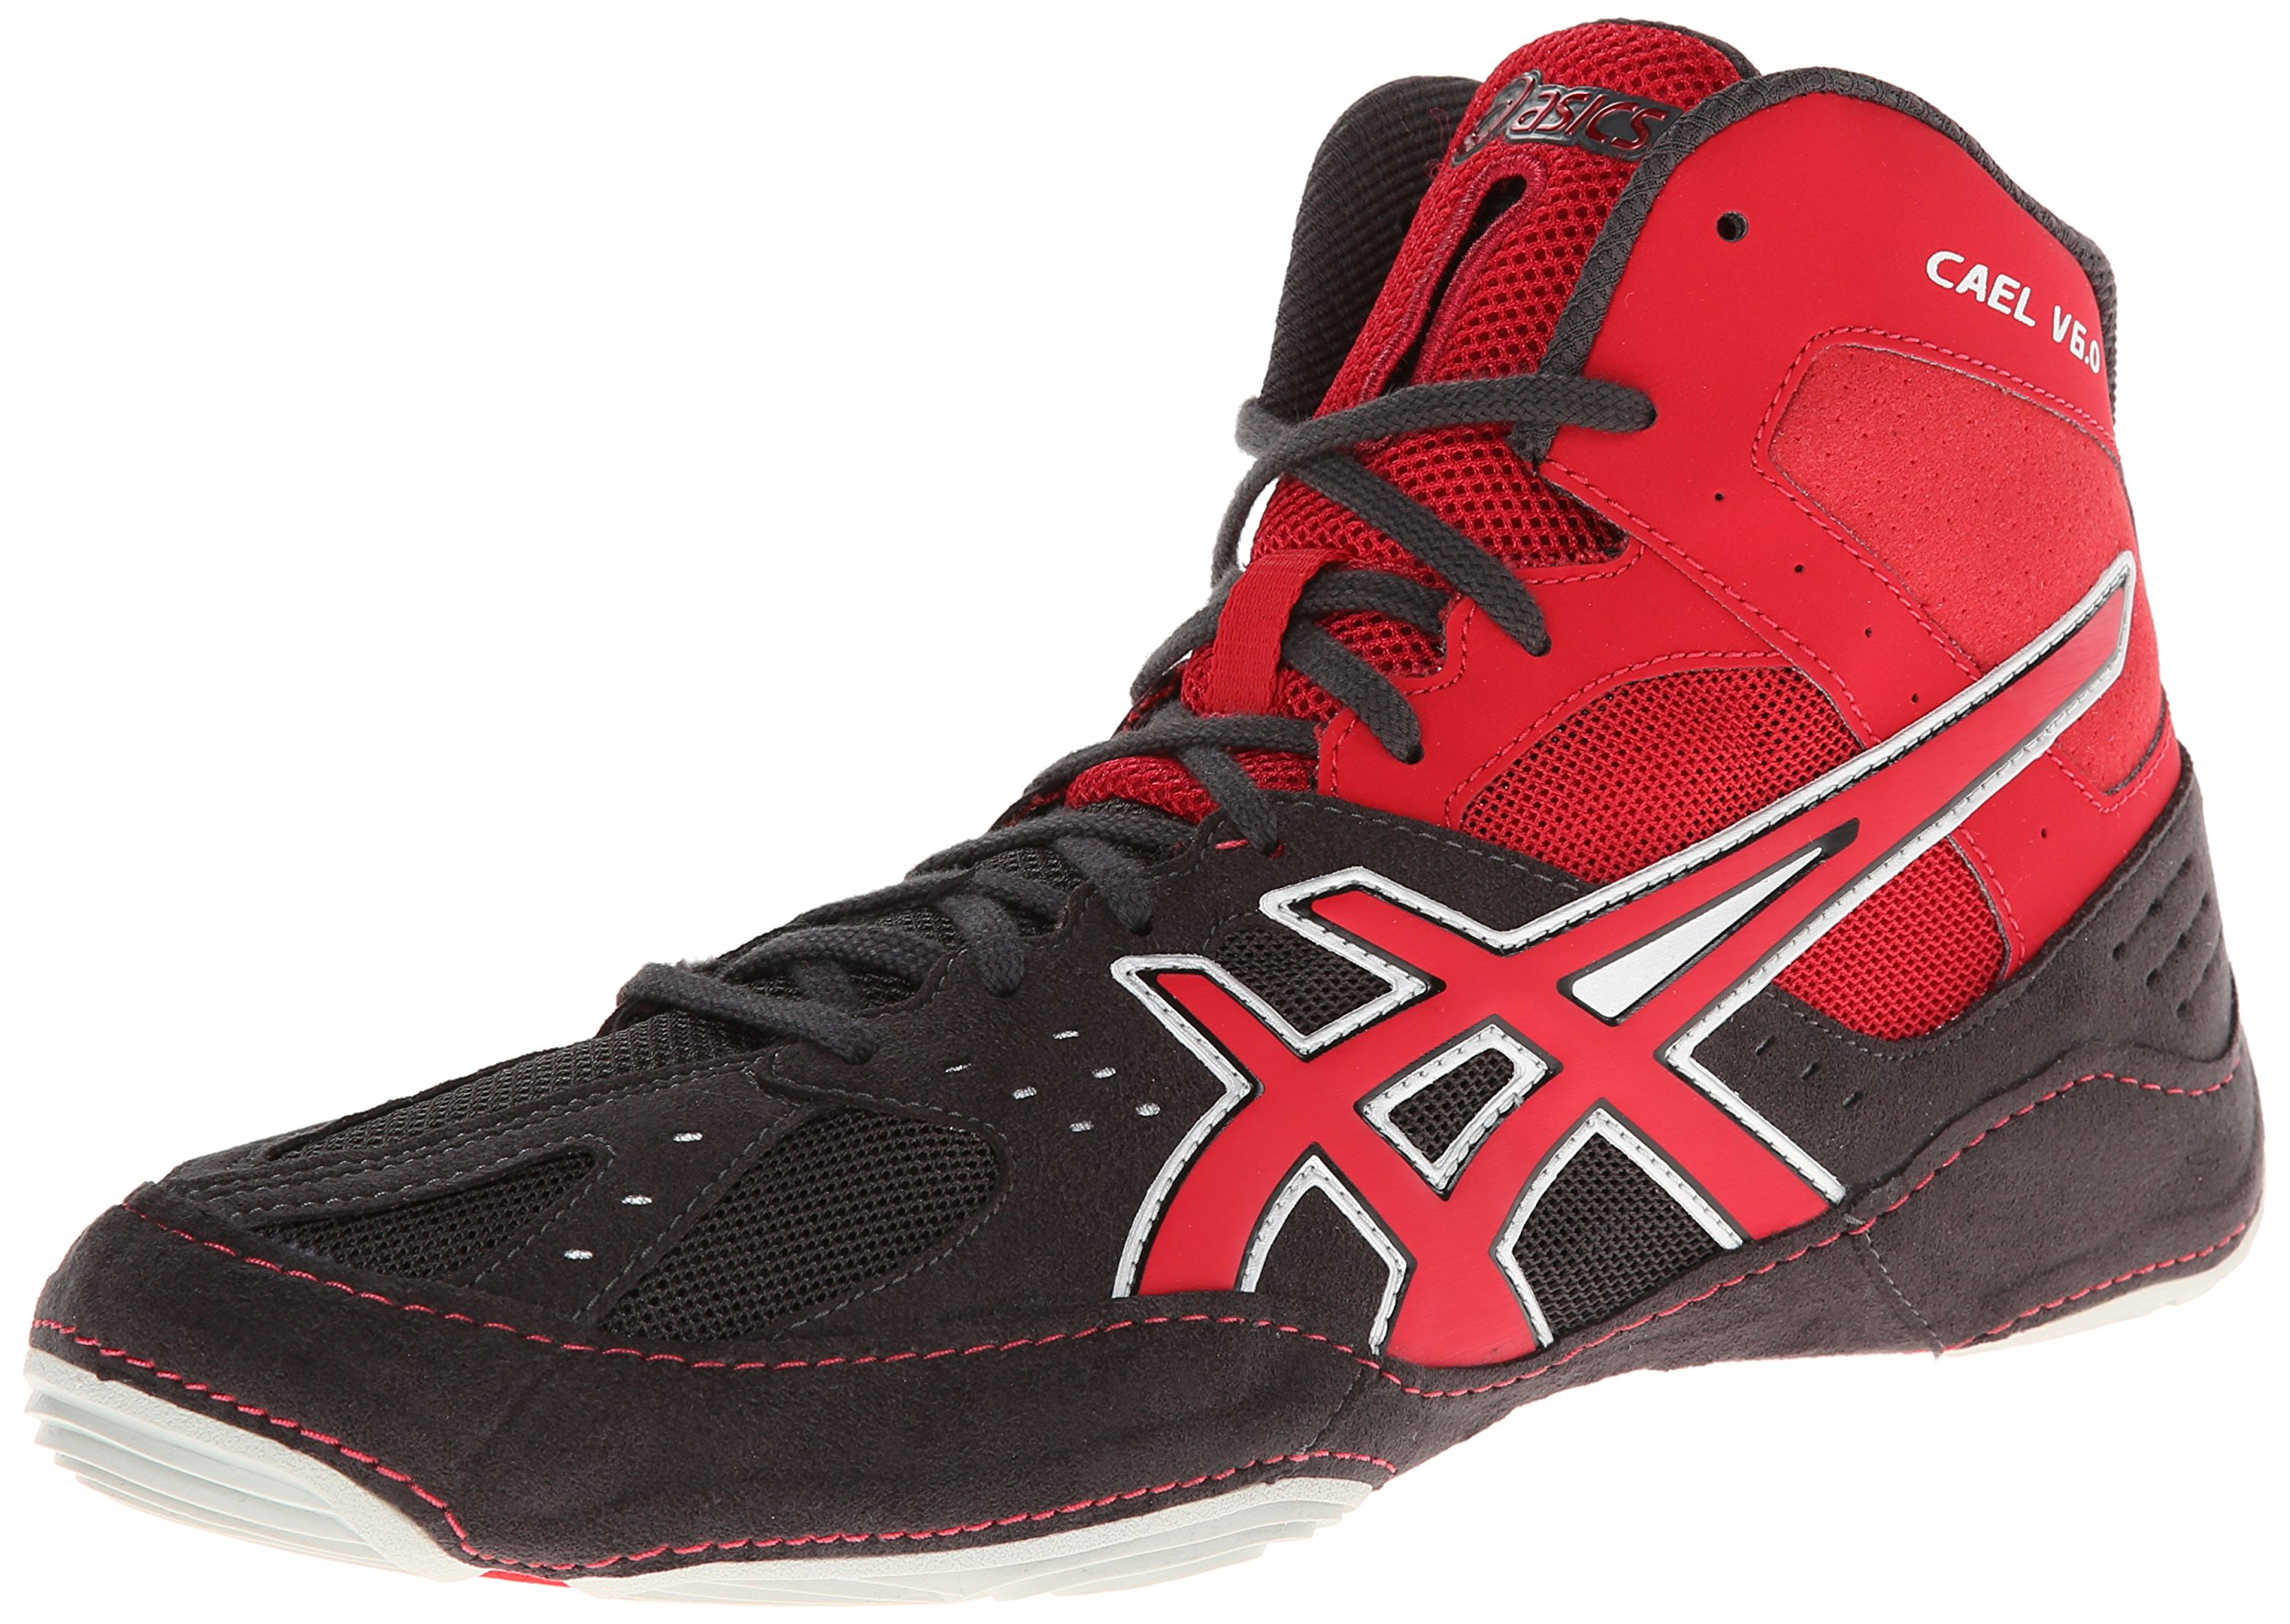 ASICS Men's Cael V6.0 Wrestling Shoe,Charcoal/Fire Red/Silver,10.5 M US